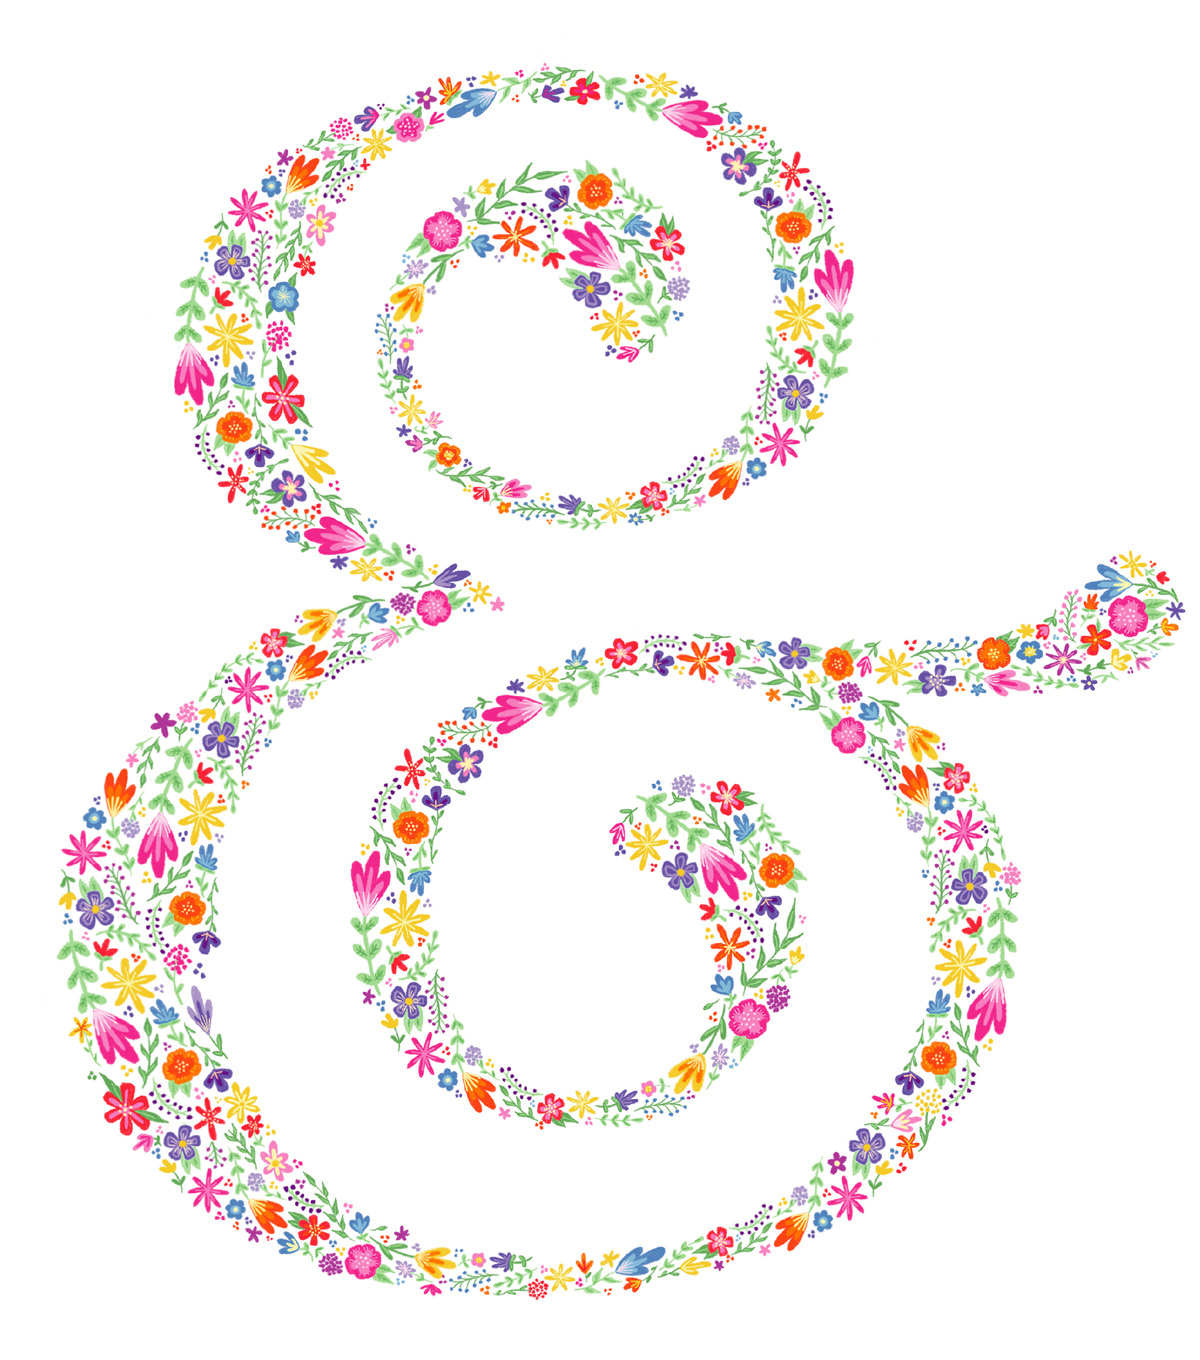 Cricut Large Floral Ampersand Iron-On Design